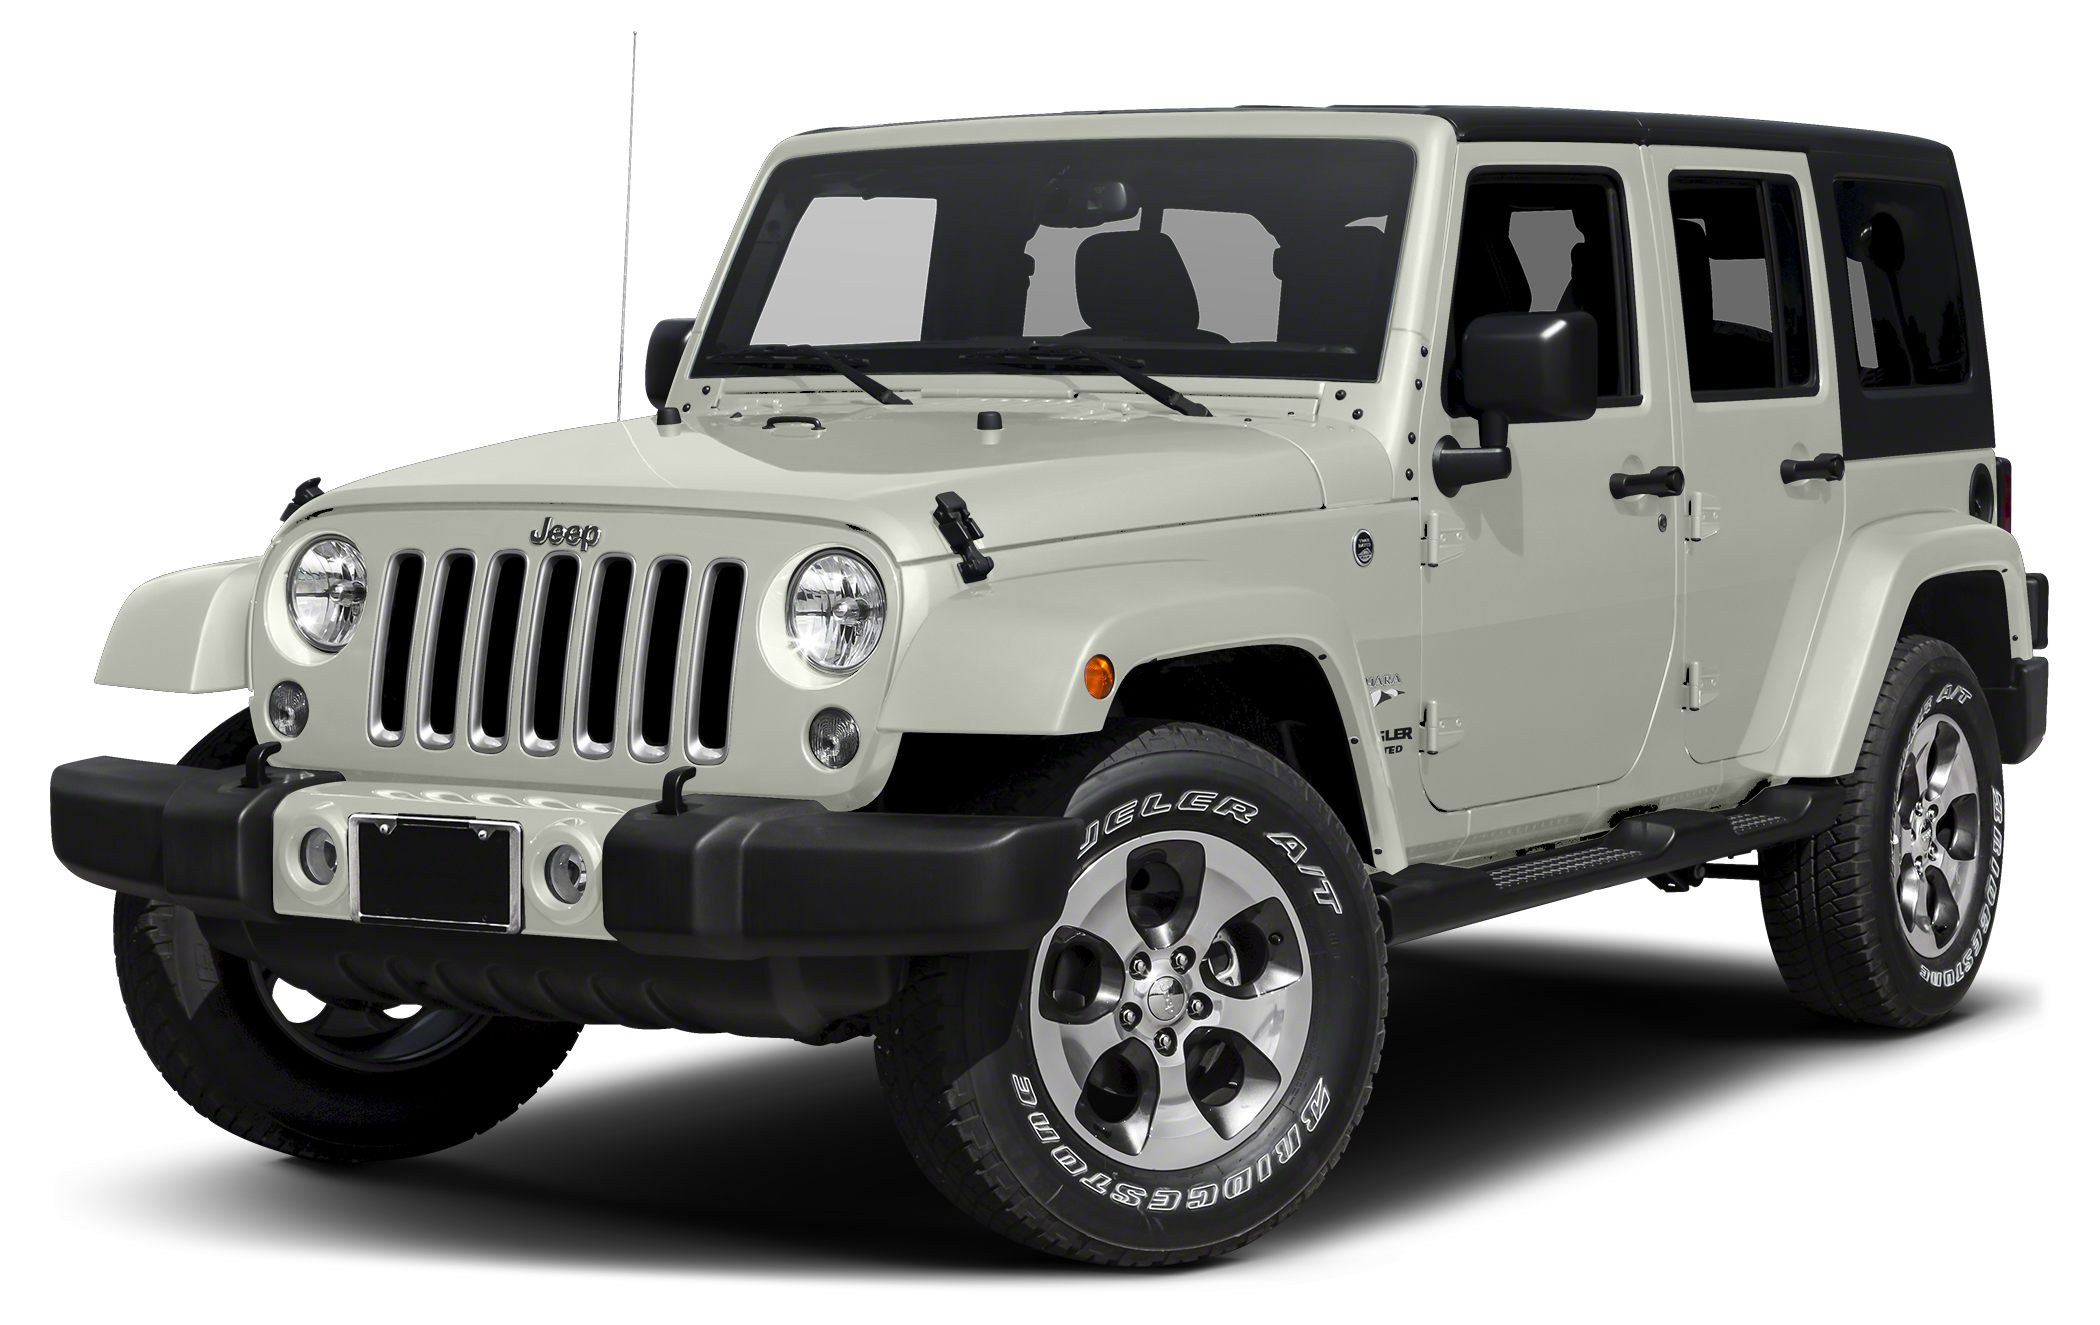 2016 Jeep Wrangler Unlimited Sahara Check out this 2016 Jeep Wrangler Unlimited  Its transmission